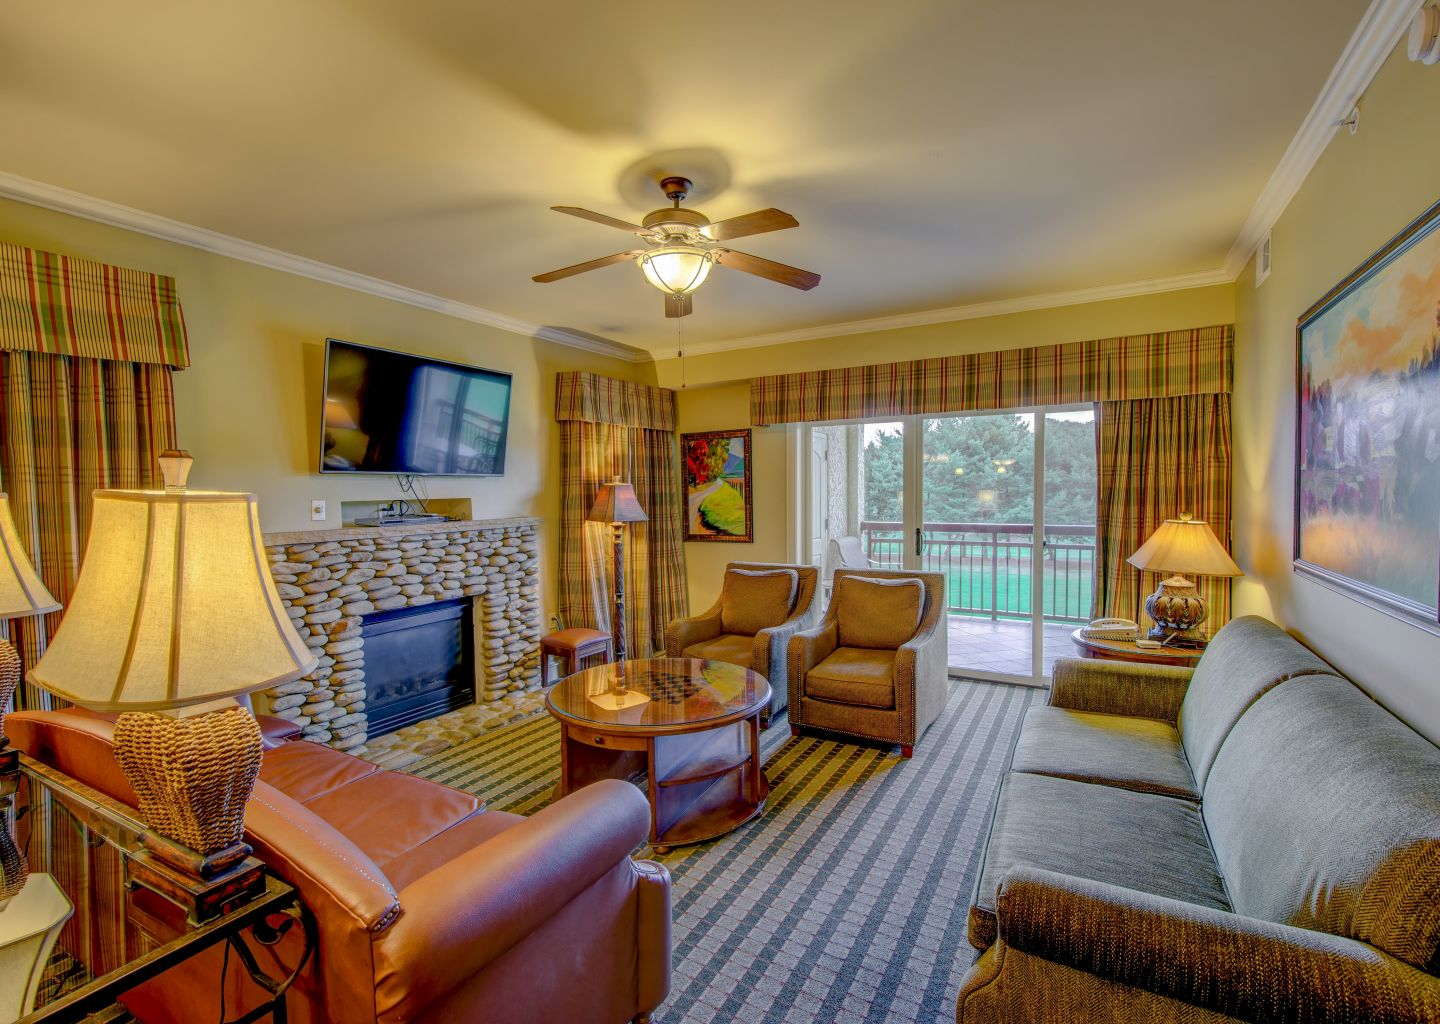 RiverStone Resort & Spa: Condos in Pigeon Forge Tennessee